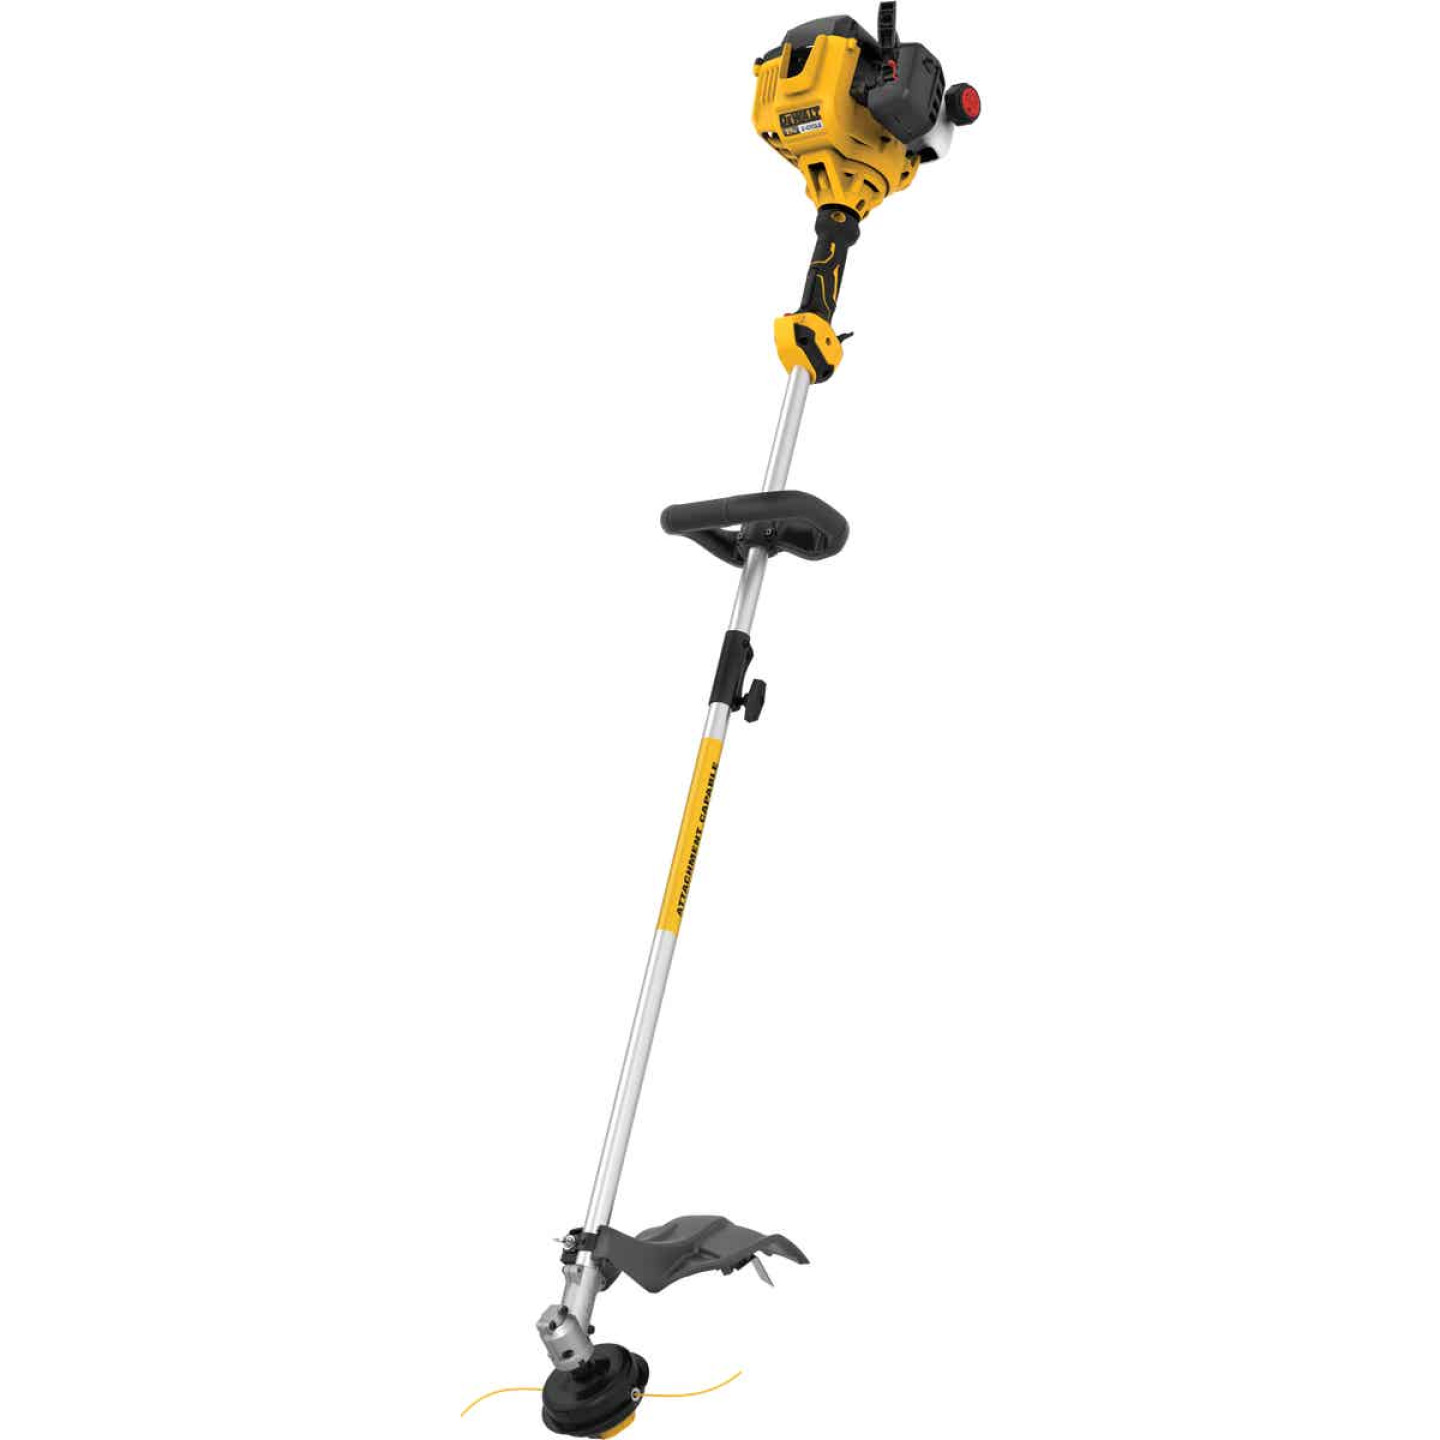 DeWalt Trimmer Plus 27cc 2-Cycle 17 In. Straight Shaft Gas String Trimmer Image 1